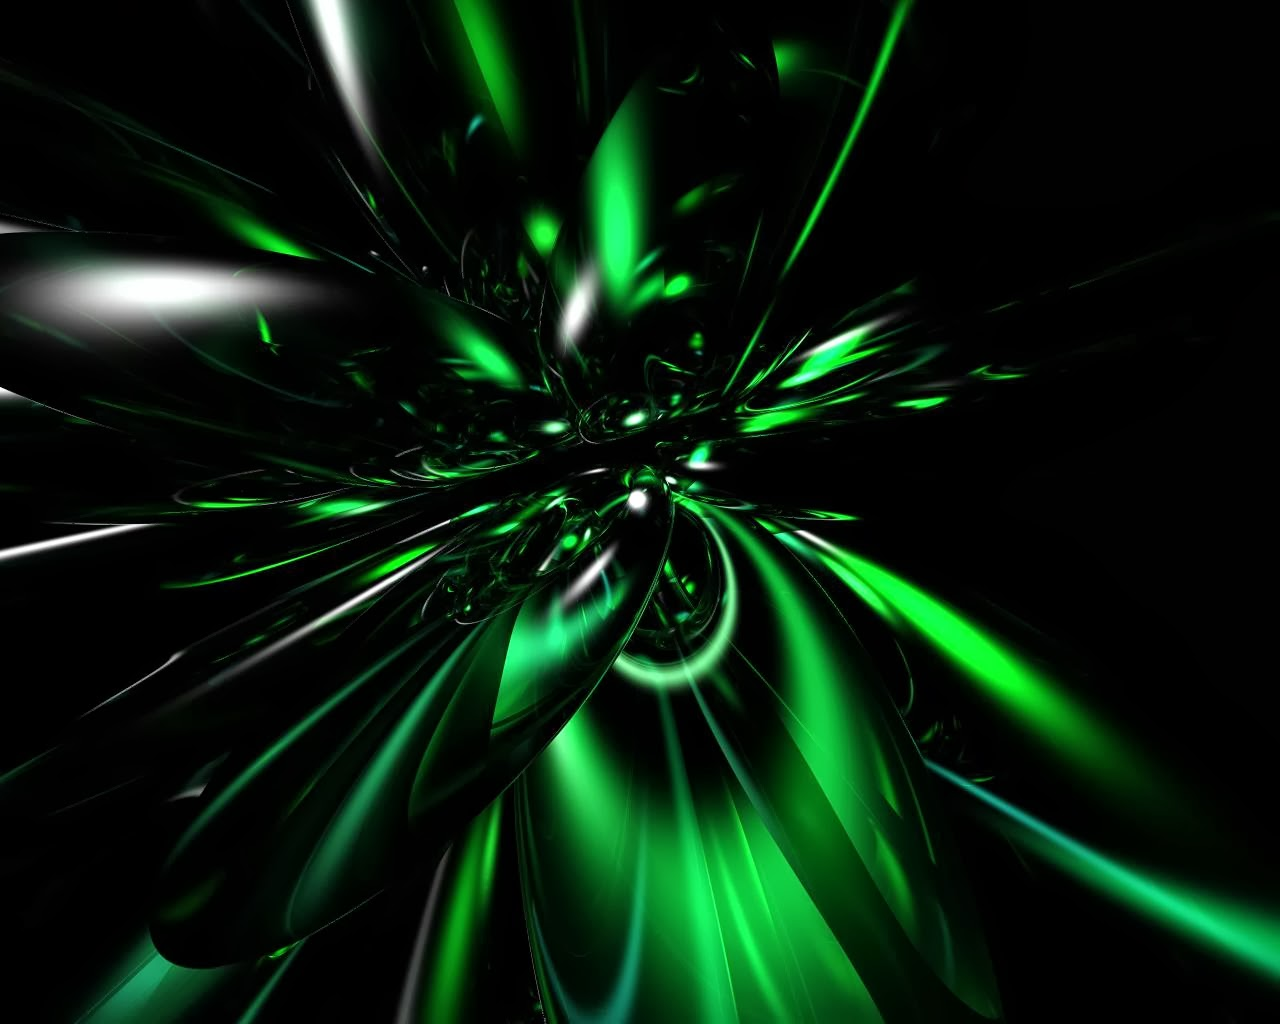 Green And Black Images 6 Hd Wallpaper - Hdblackwallpaper.com  Green And Black...